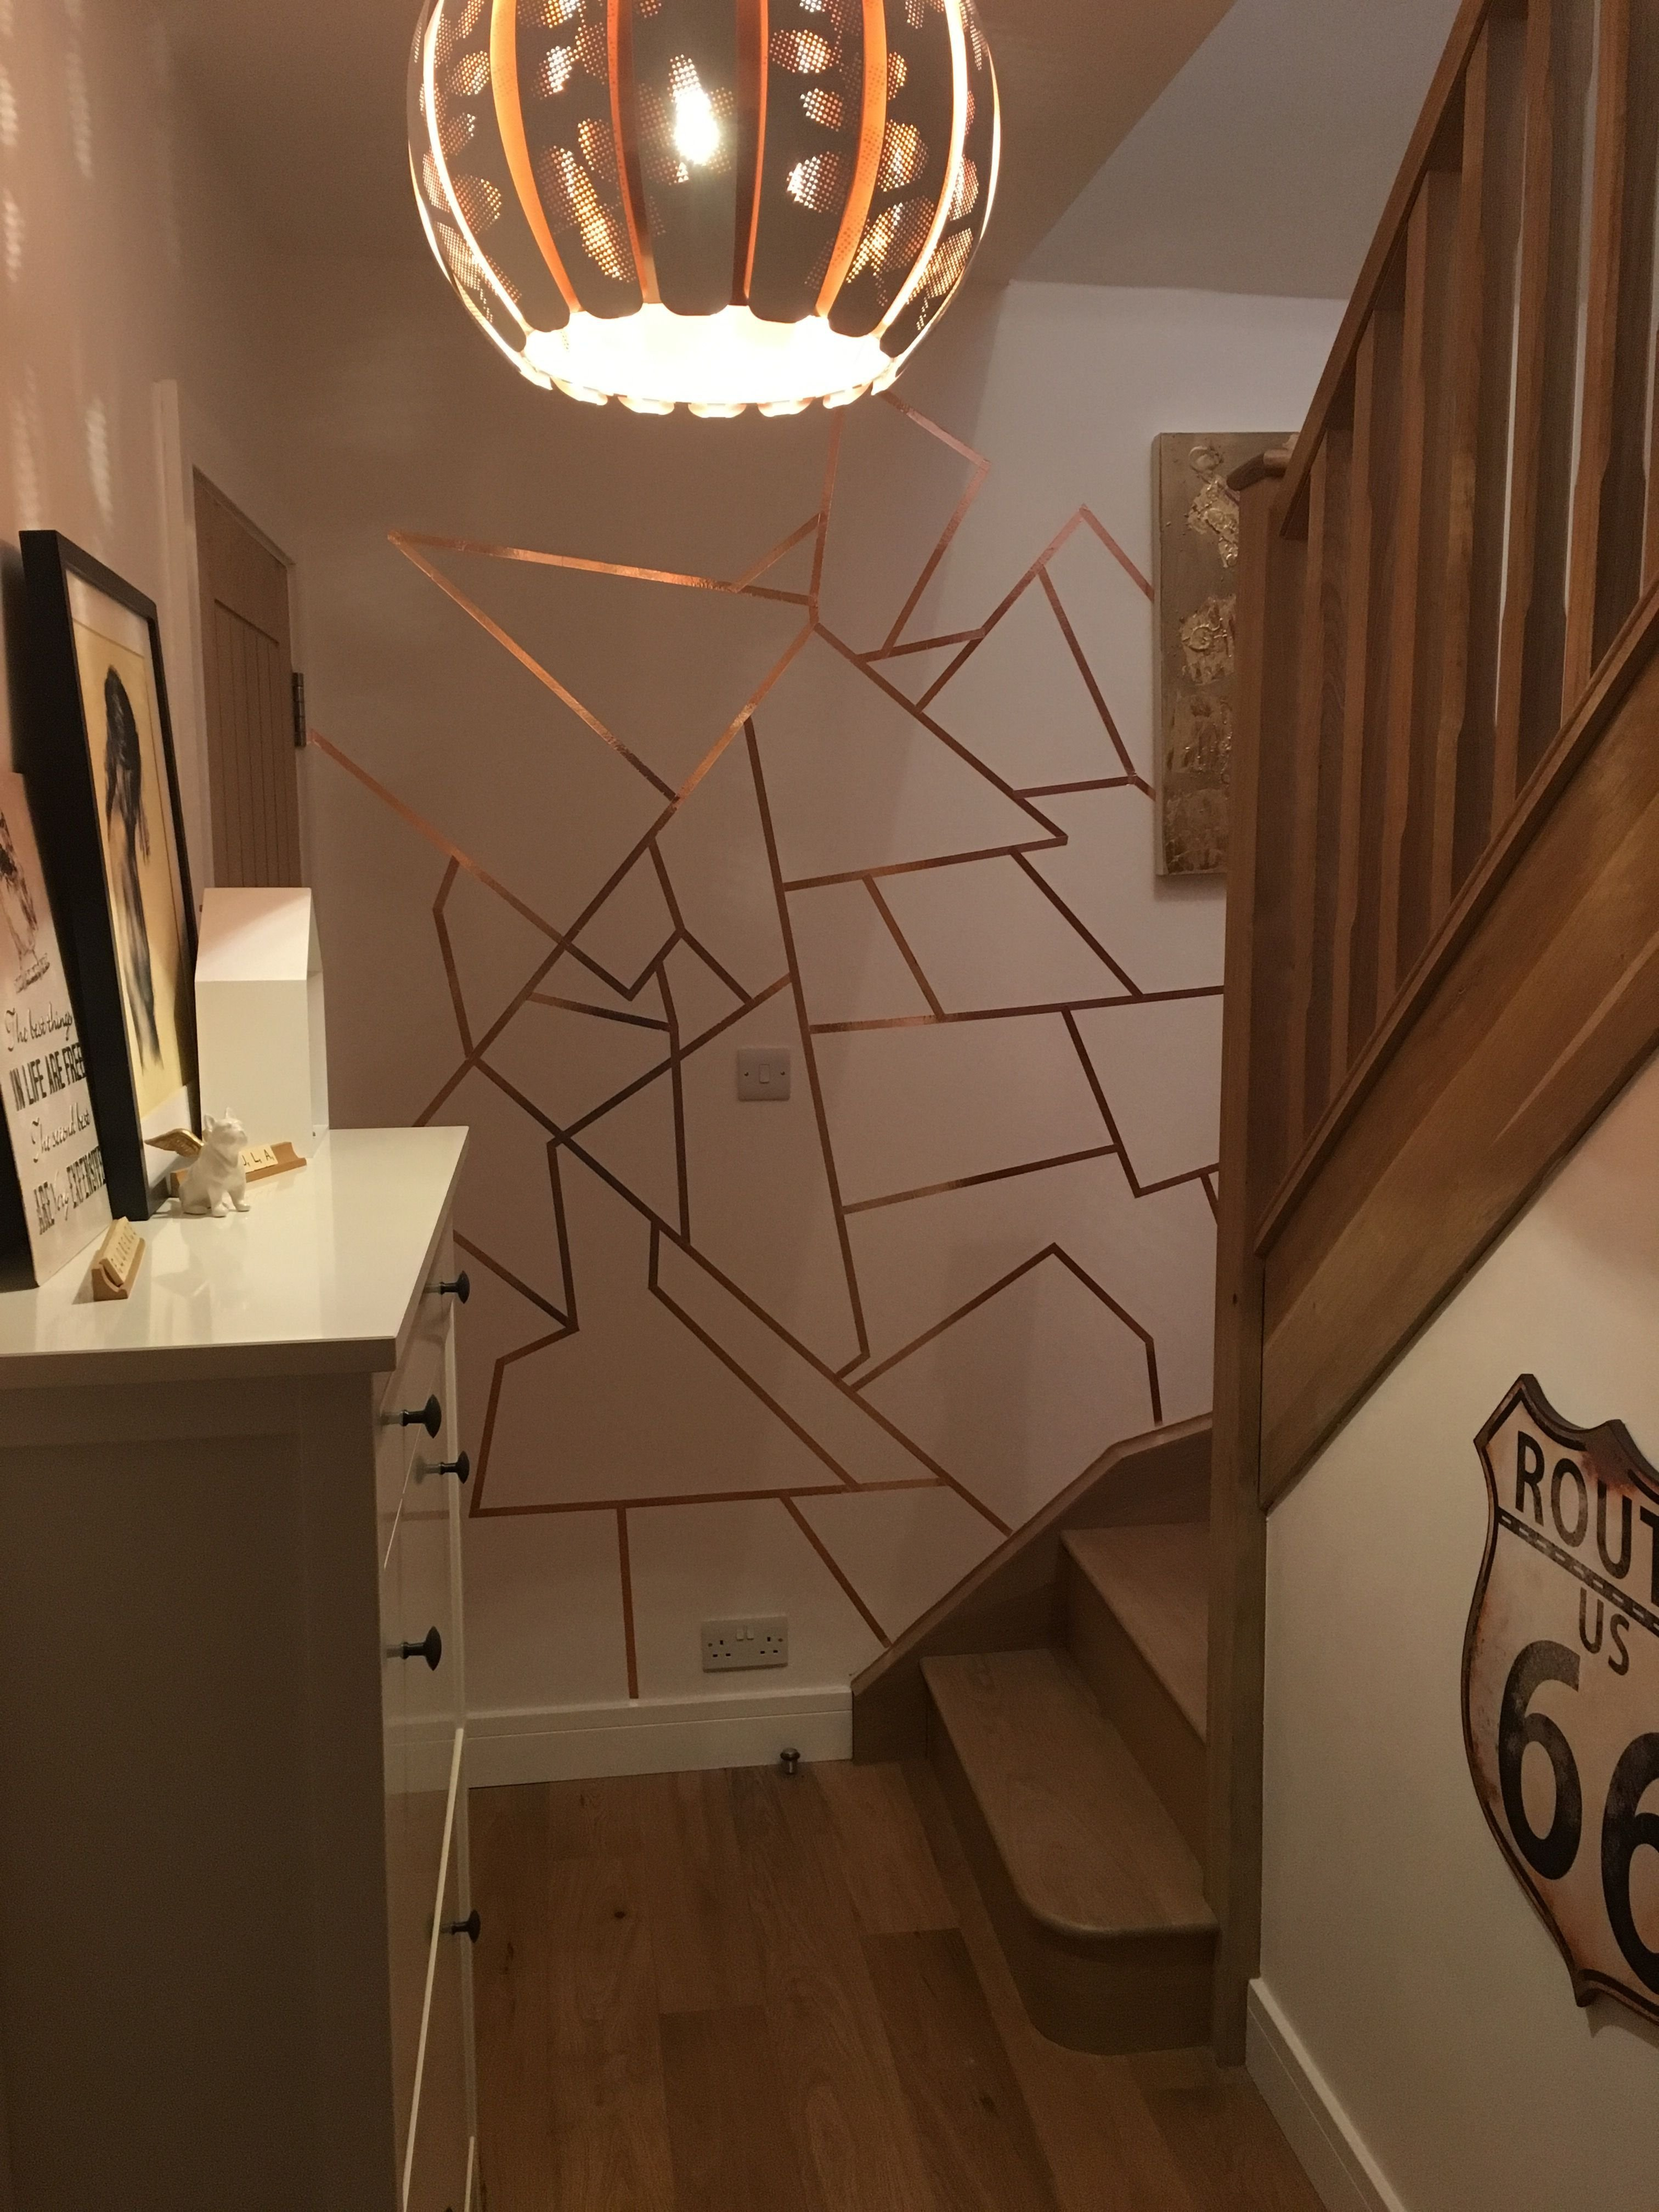 Best Copper Slug Tape On Walls Inside Pinterest Walls With Pictures